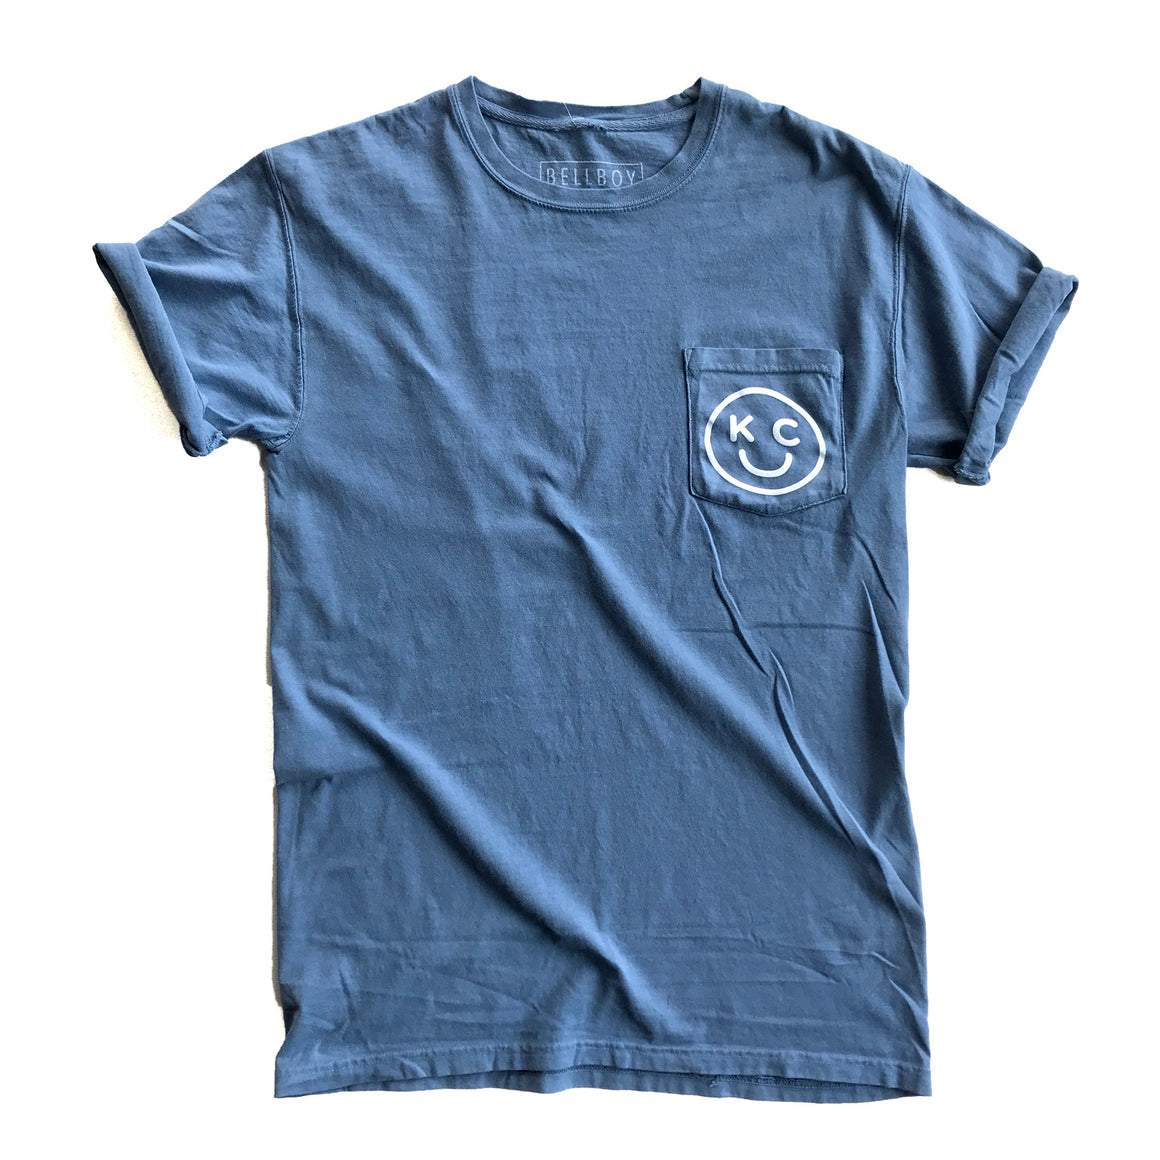 BELLBOY | KC SMILEY POCKET TEE | SALTWATER